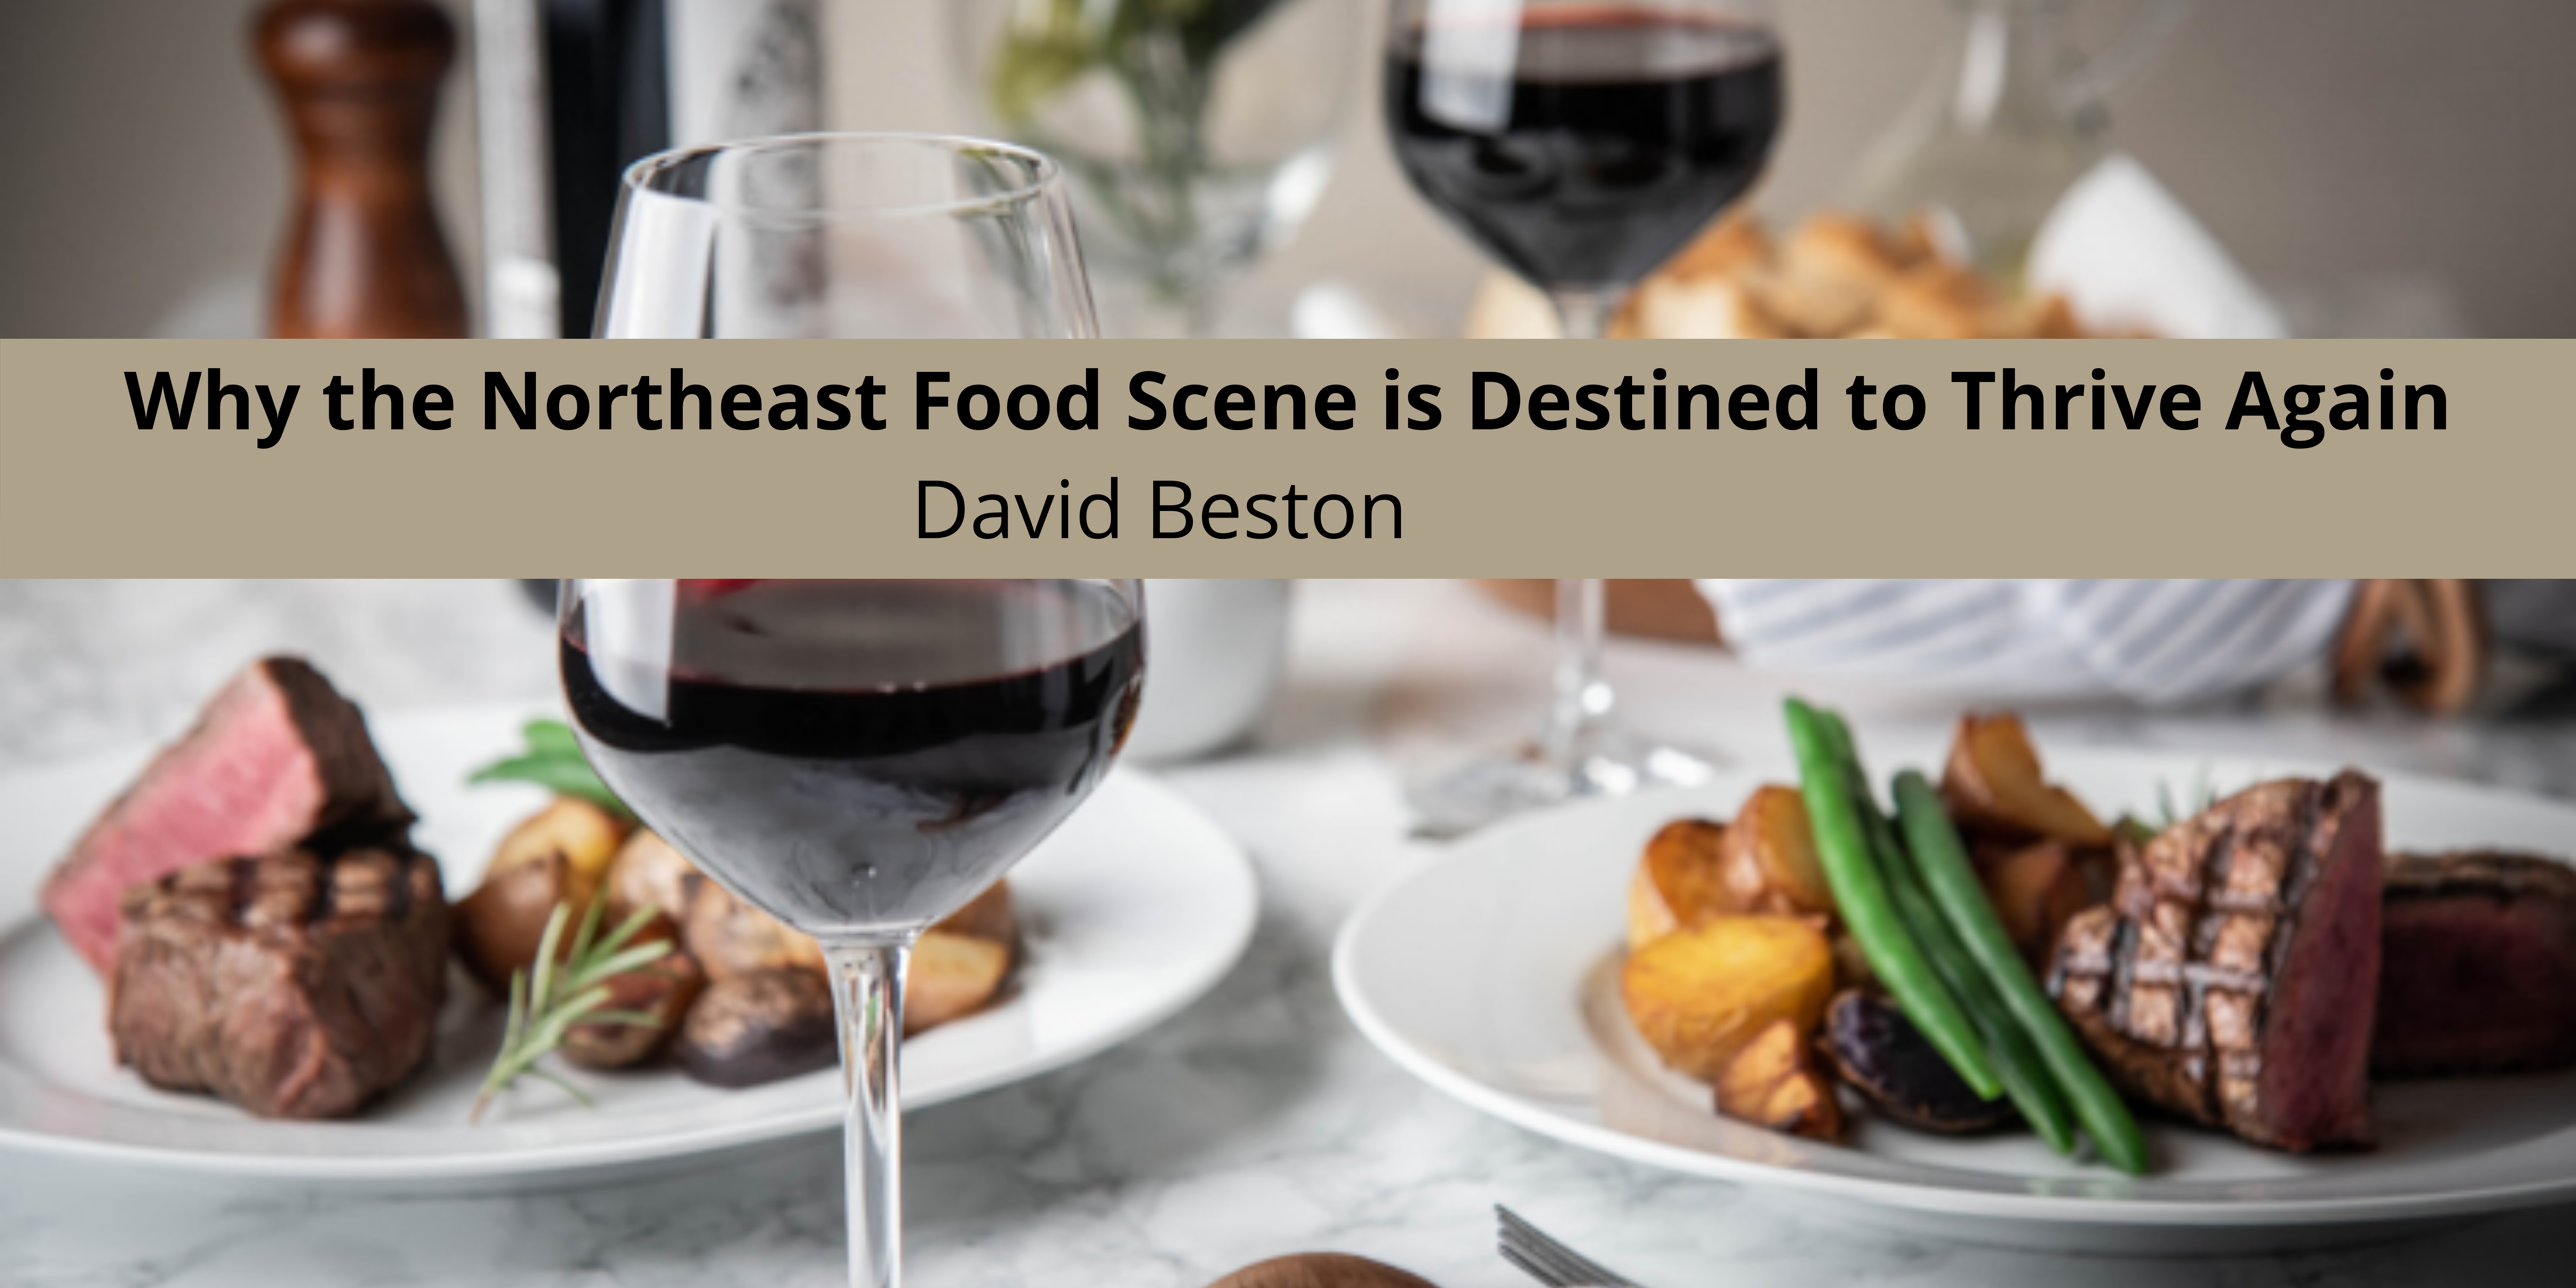 David Beston Chef Explains Why the Northeast Food Scene is Destined to Thrive Again